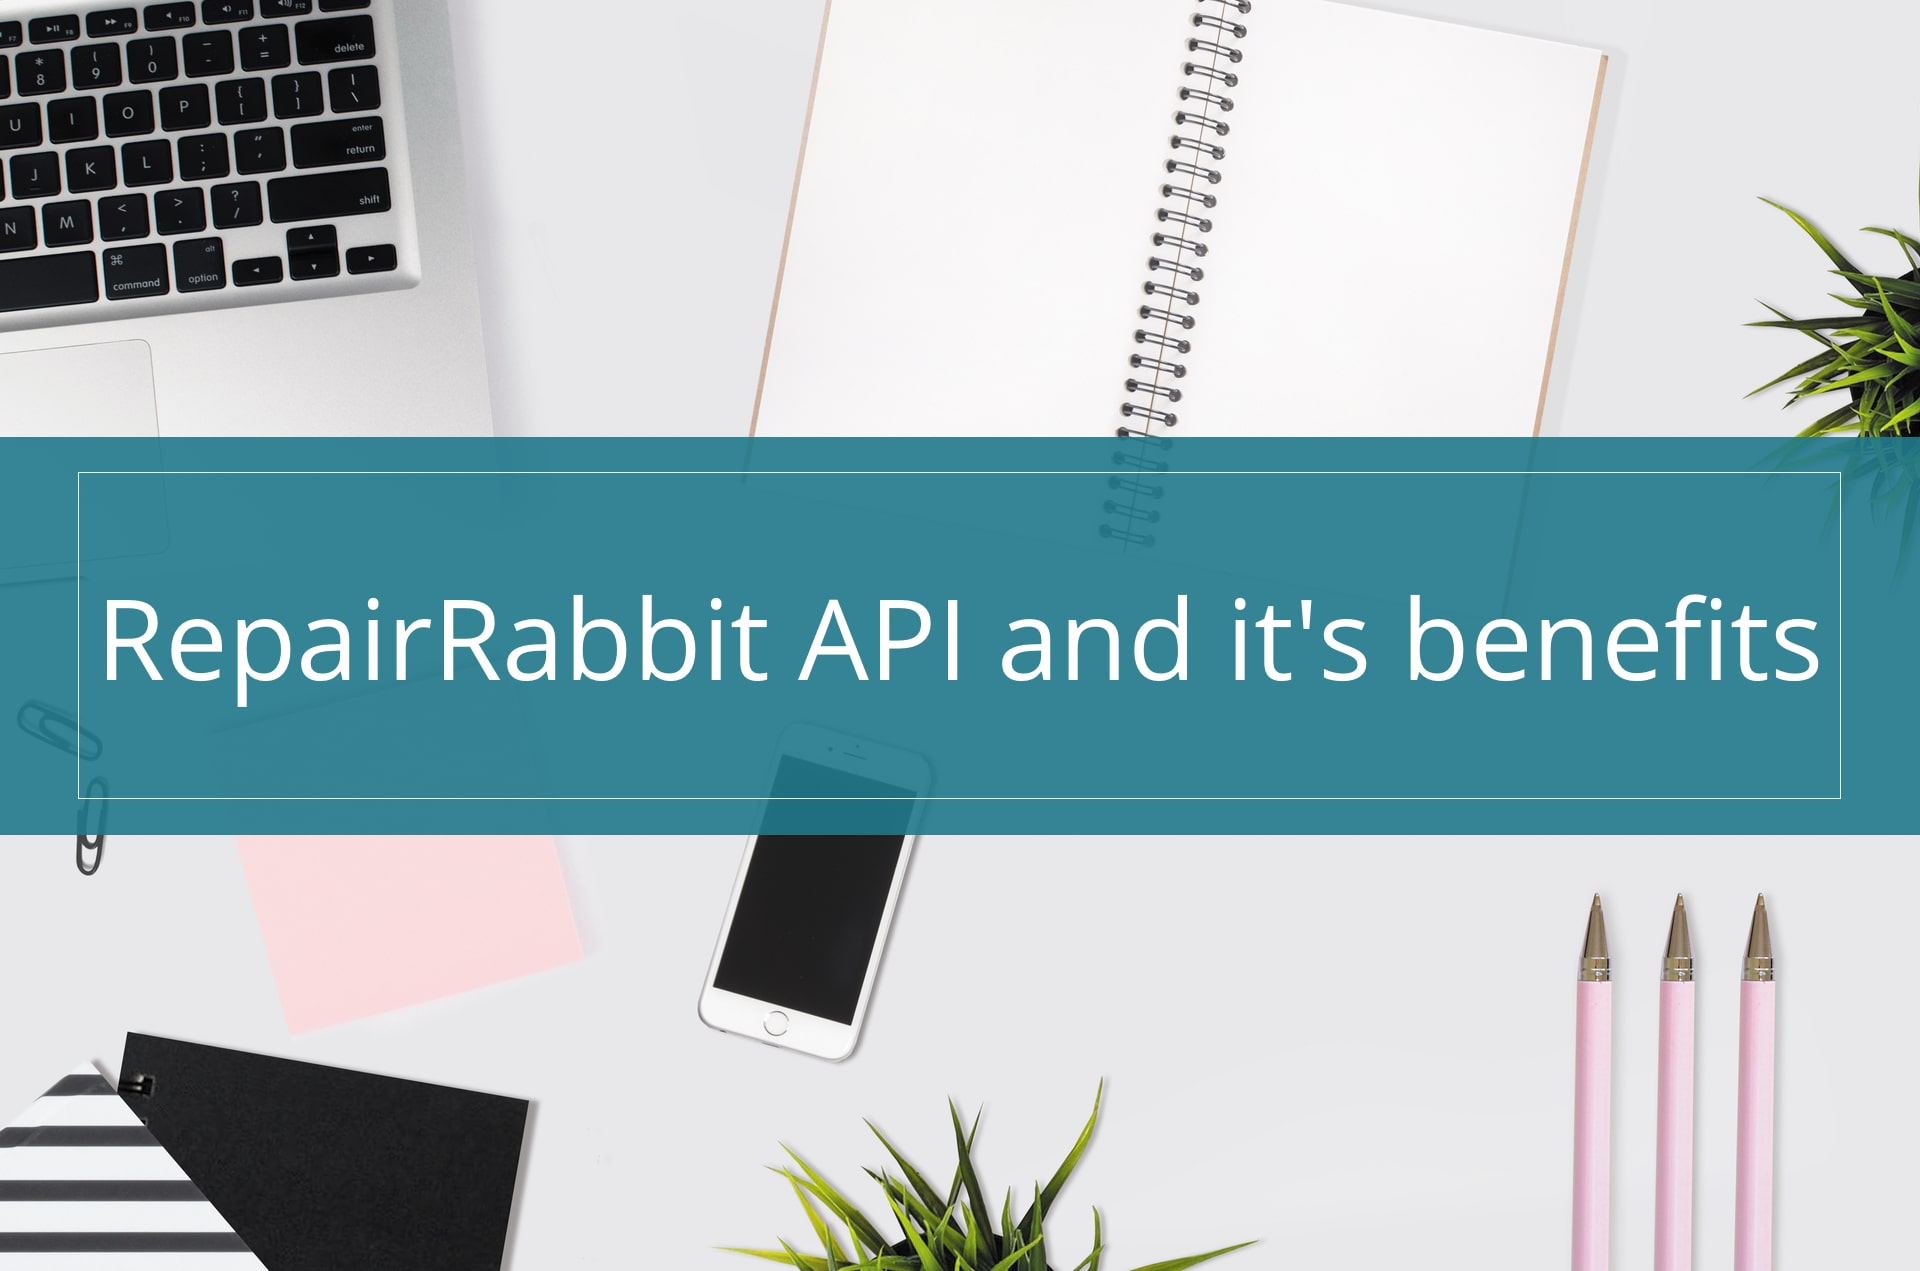 Everthing You Need to Know About RepairRabbit API